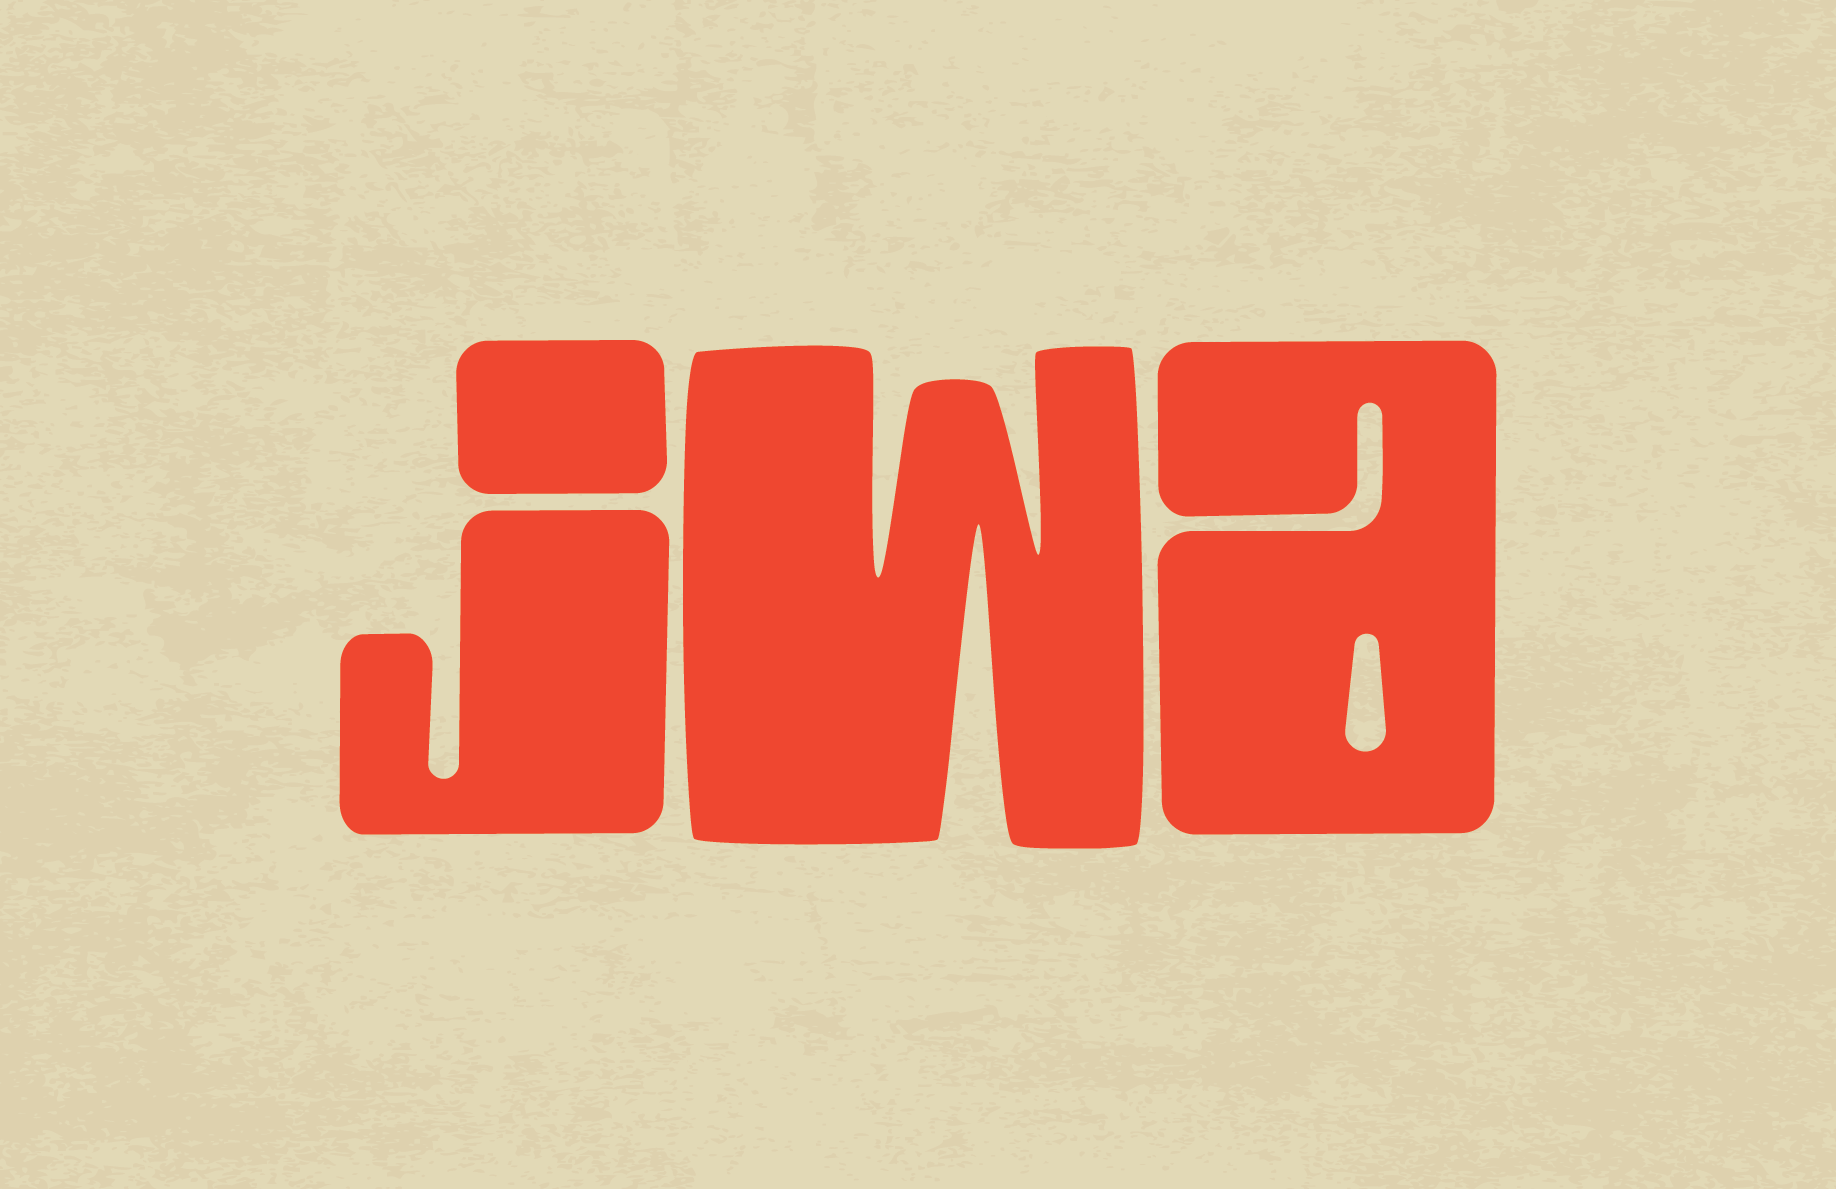 beige background orange letters JWA